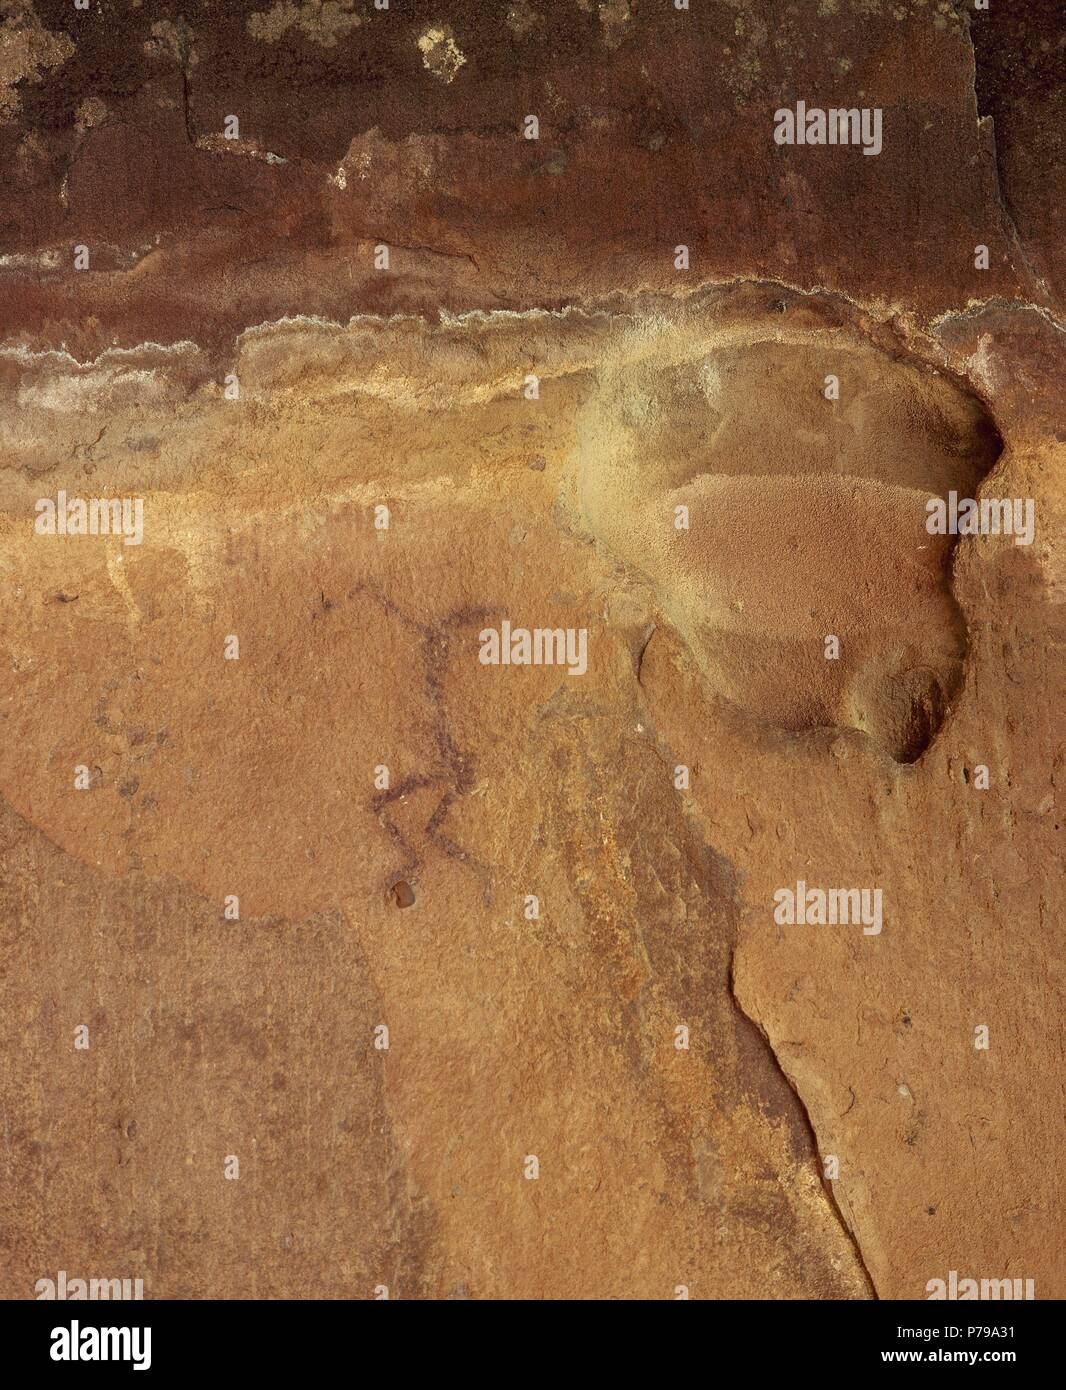 Cuevas Con Pinturas Rupestres En España Levantine Cave Rock Art Stock Photos And Levantine Cave Rock